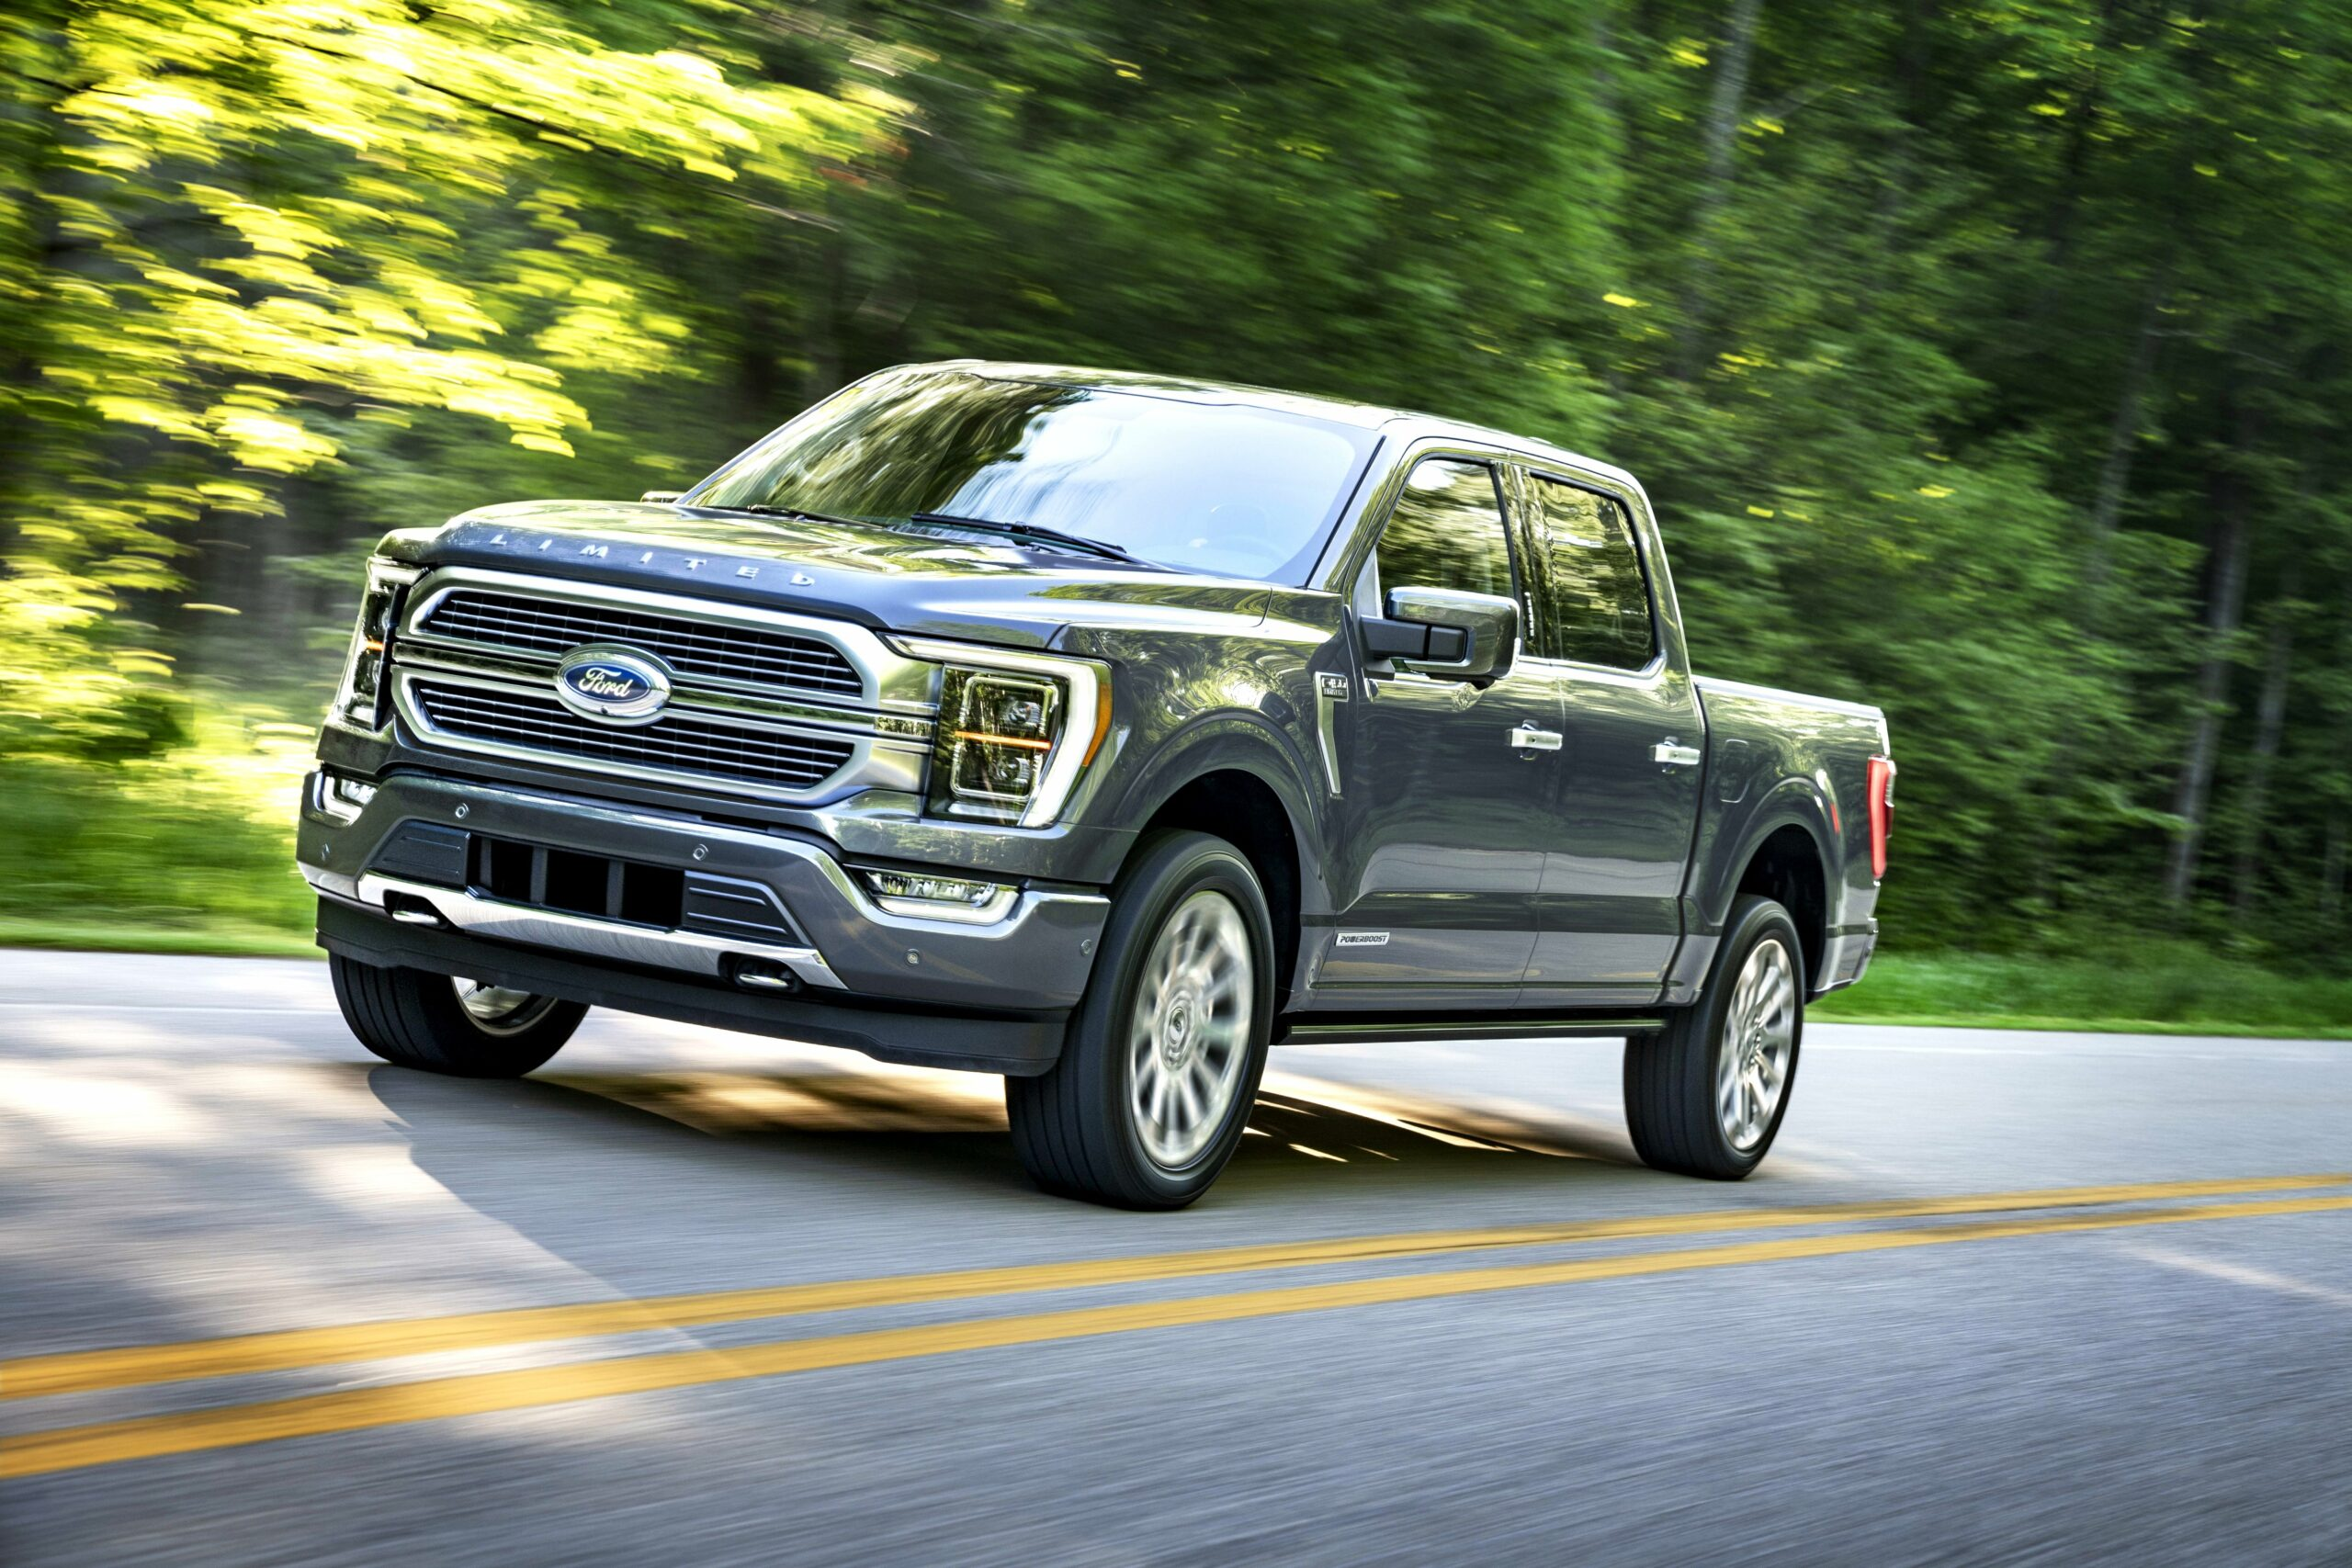 ford q2 2020 Picture